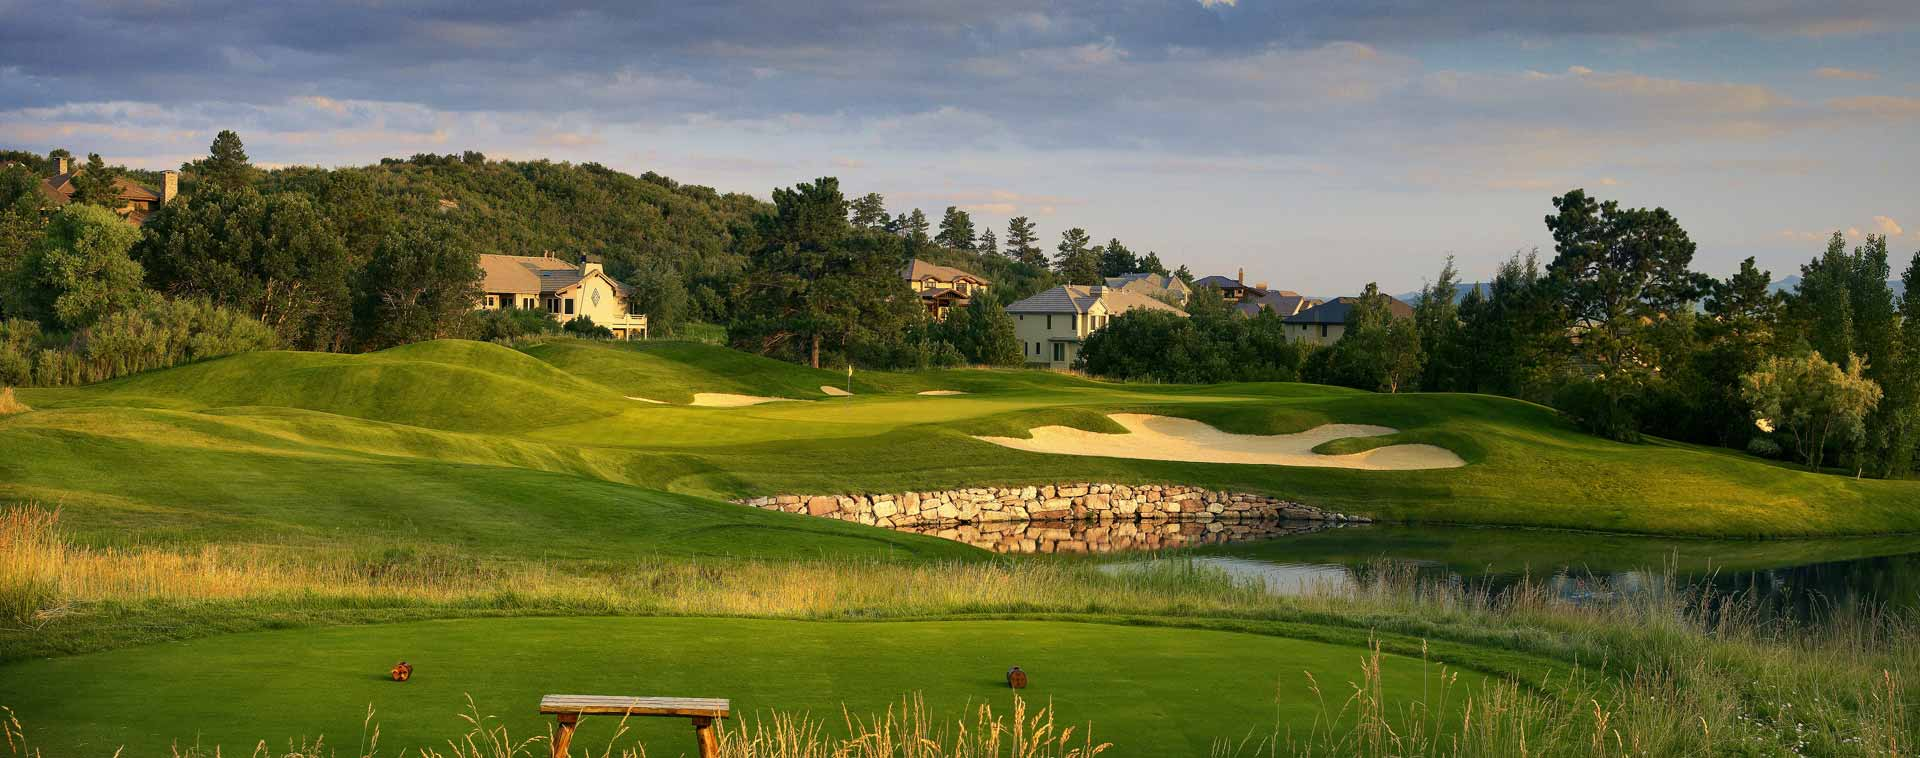 Overview of golf course named Country Club at Castle Pines